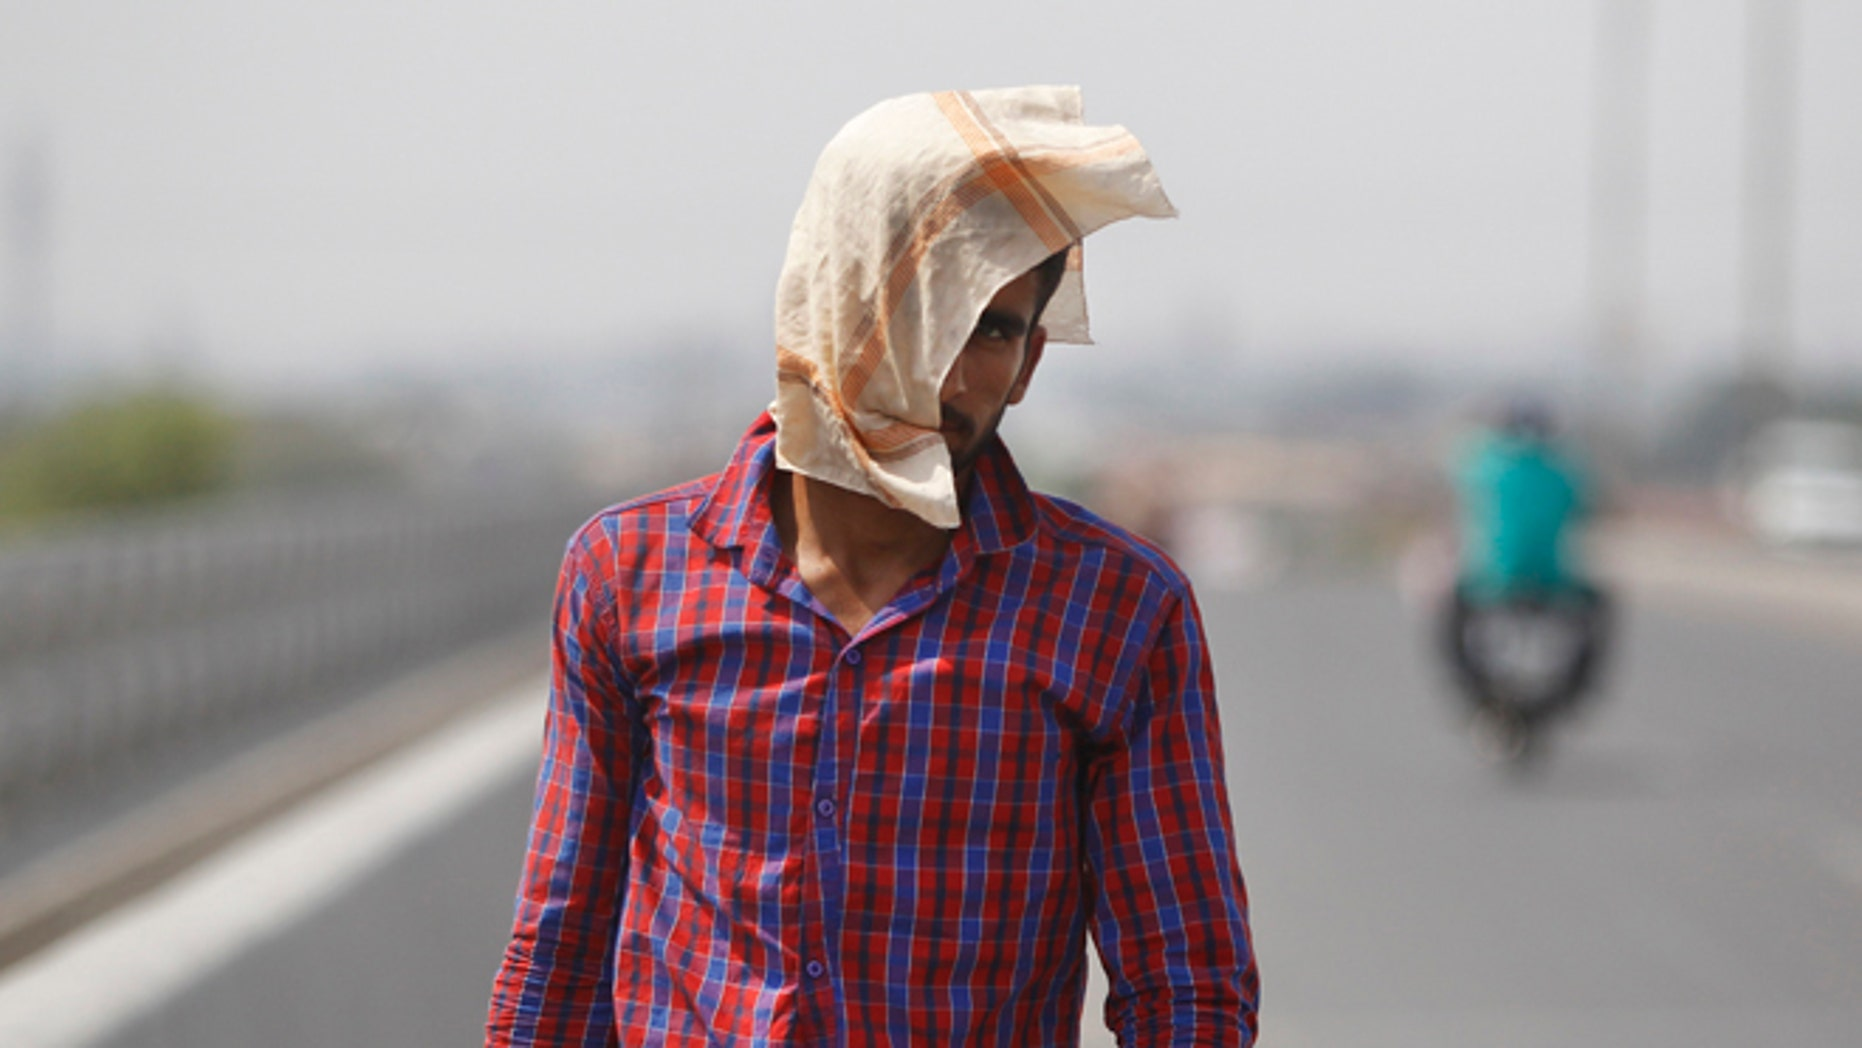 A man uses a cloth to protect himself from the sun during a hot summer day in Jammu, India, Friday, May 20, 2016. The prolonged heat wave this year has already killed hundreds and destroyed crops in more than 13 states, impacting hundreds of millions of Indians. (AP Photo/Channi Anand)